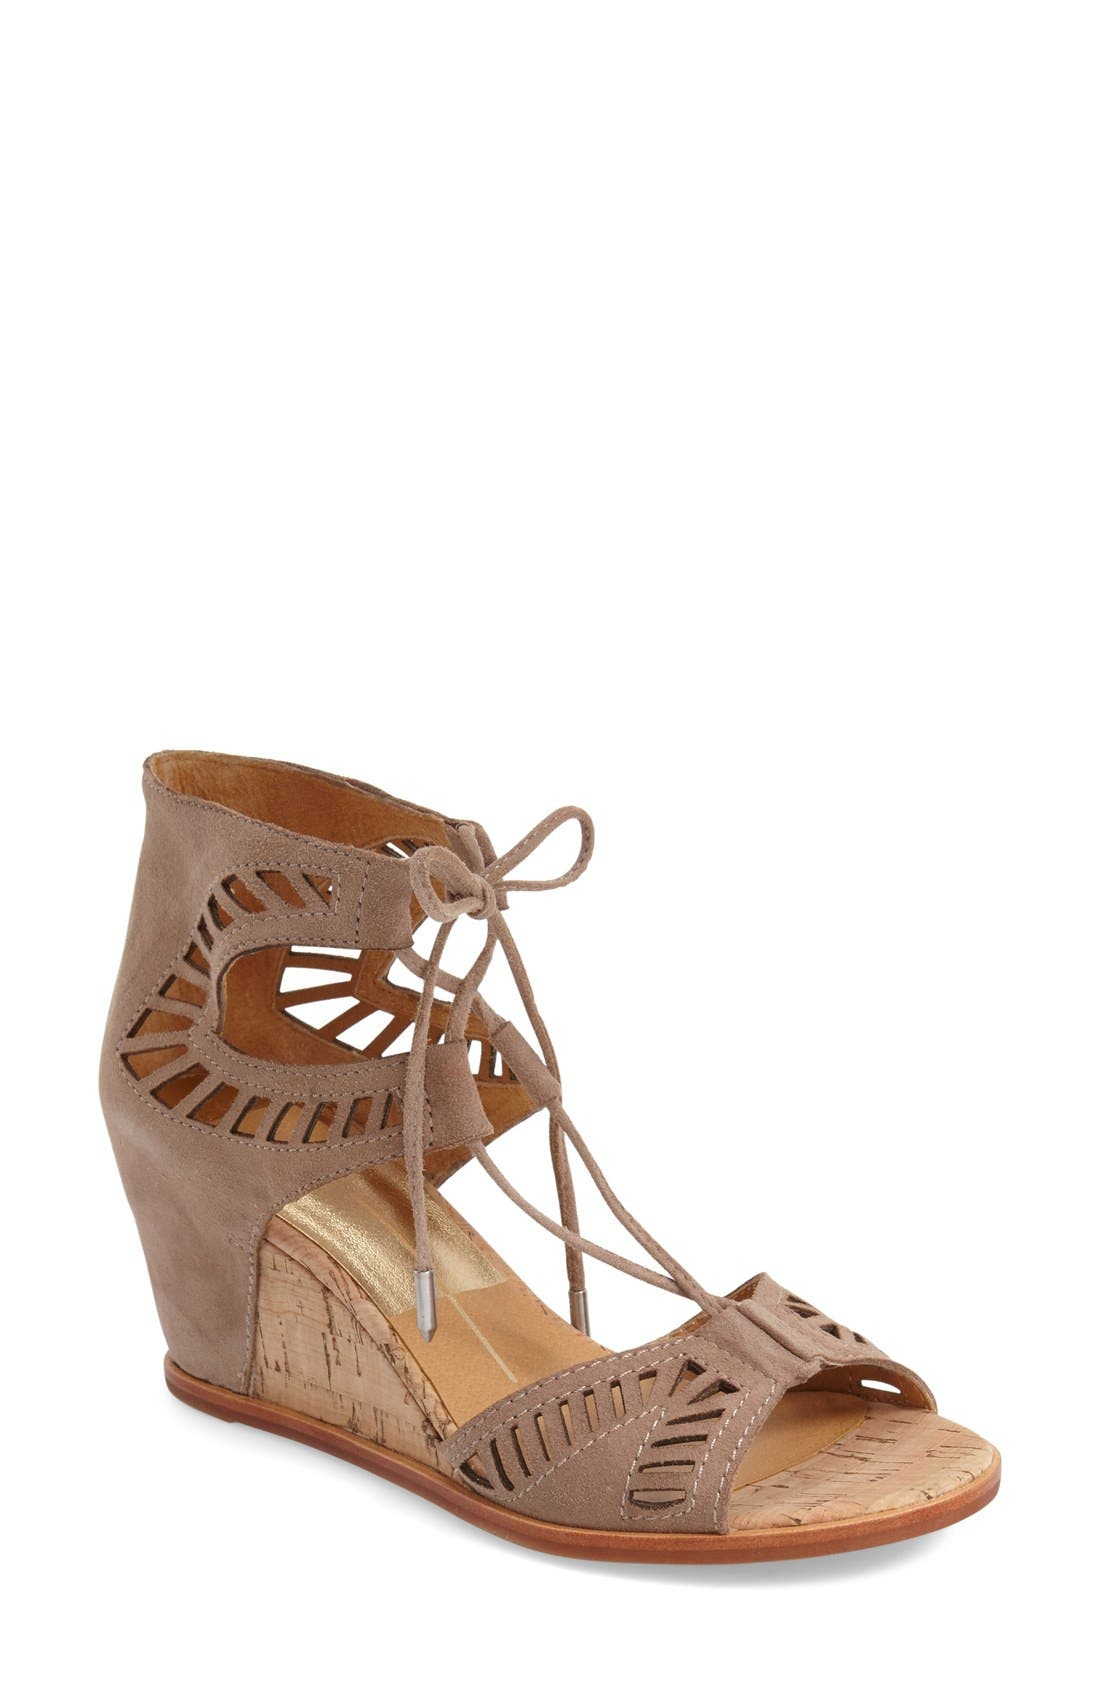 Alternate Image 1 Selected - Dolce Vita 'Linsey' Lace-Up Wedge Sandal (Women)